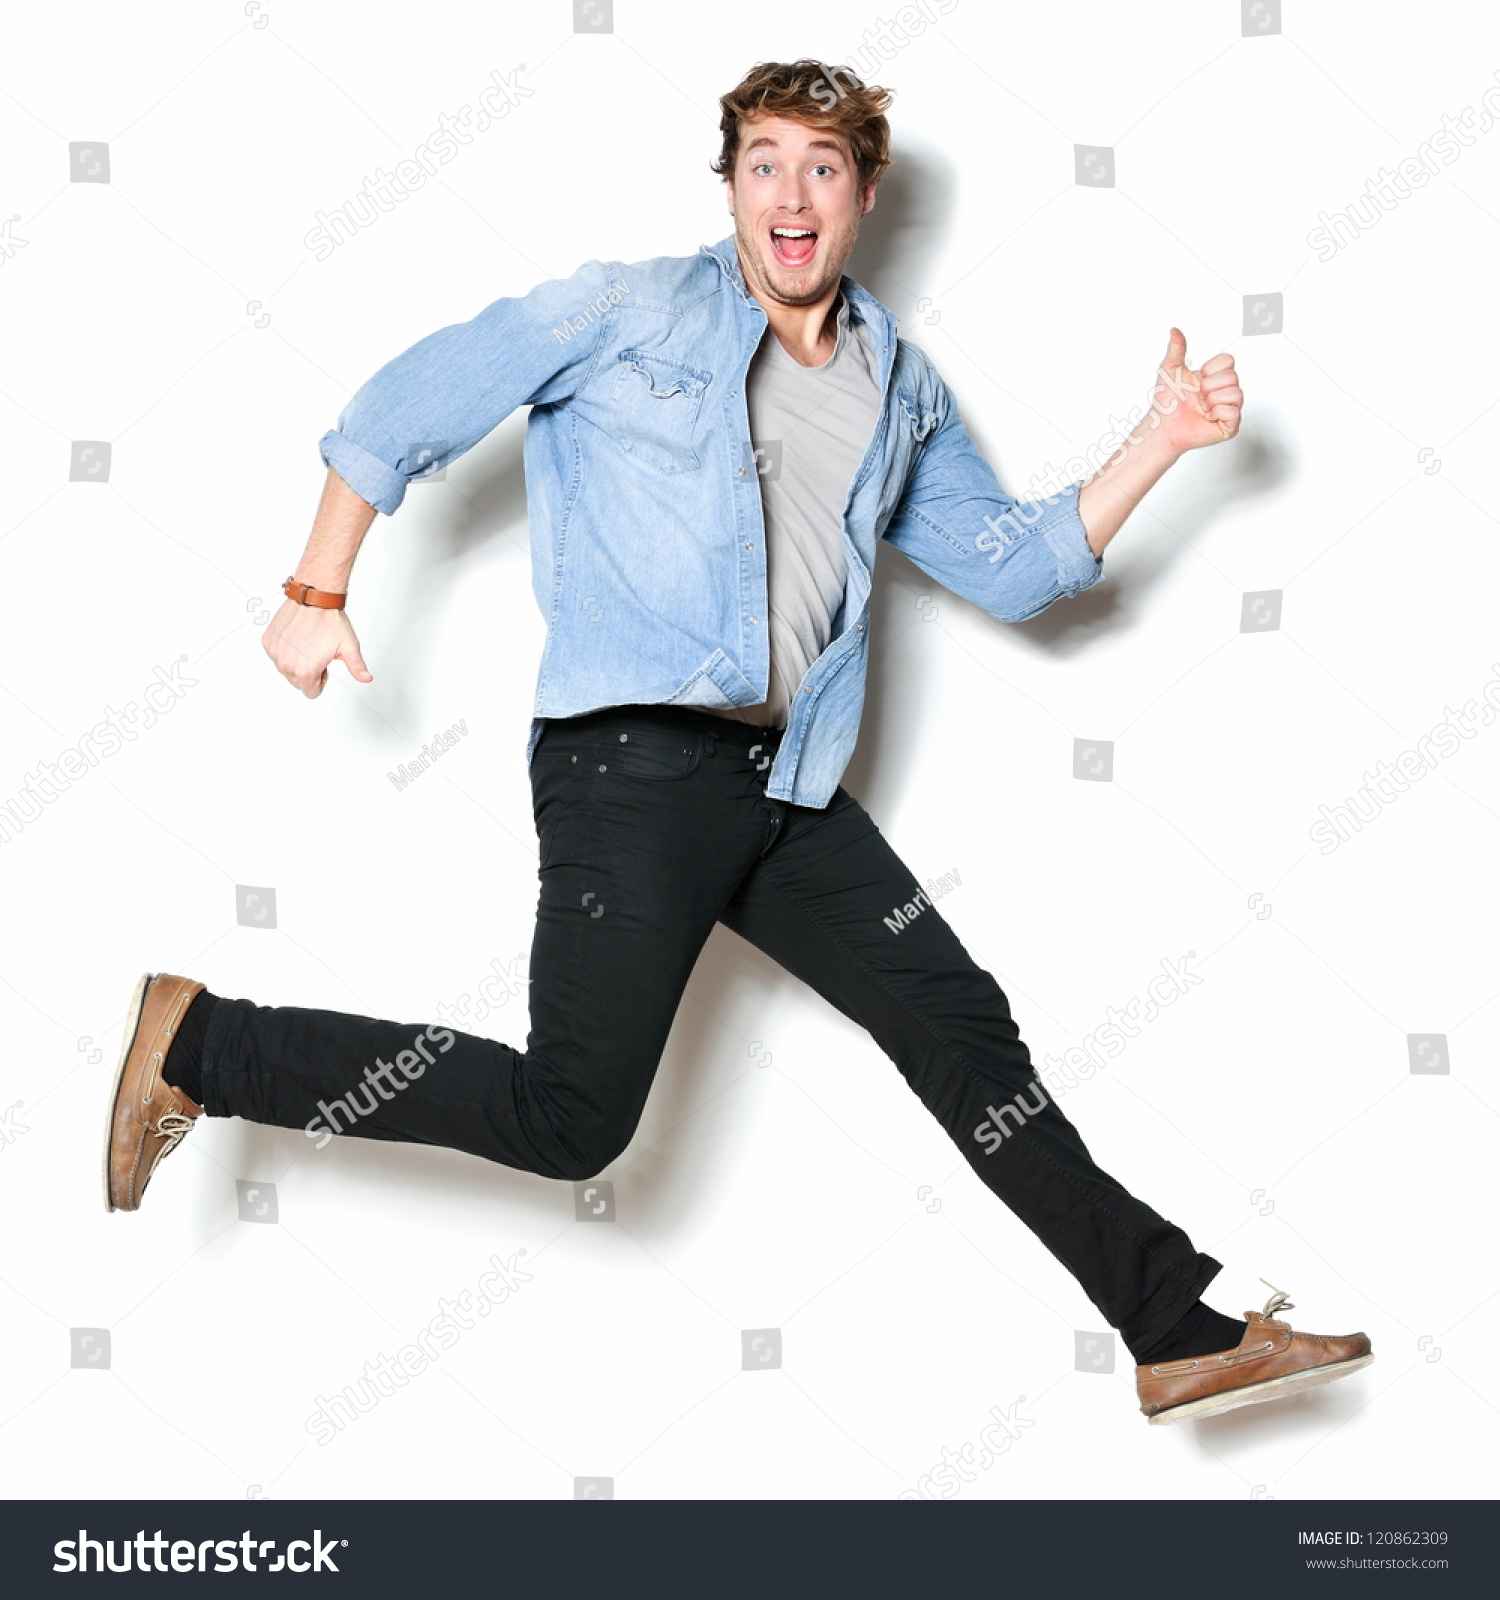 stock-photo-jumping-man-happy-excited-fu